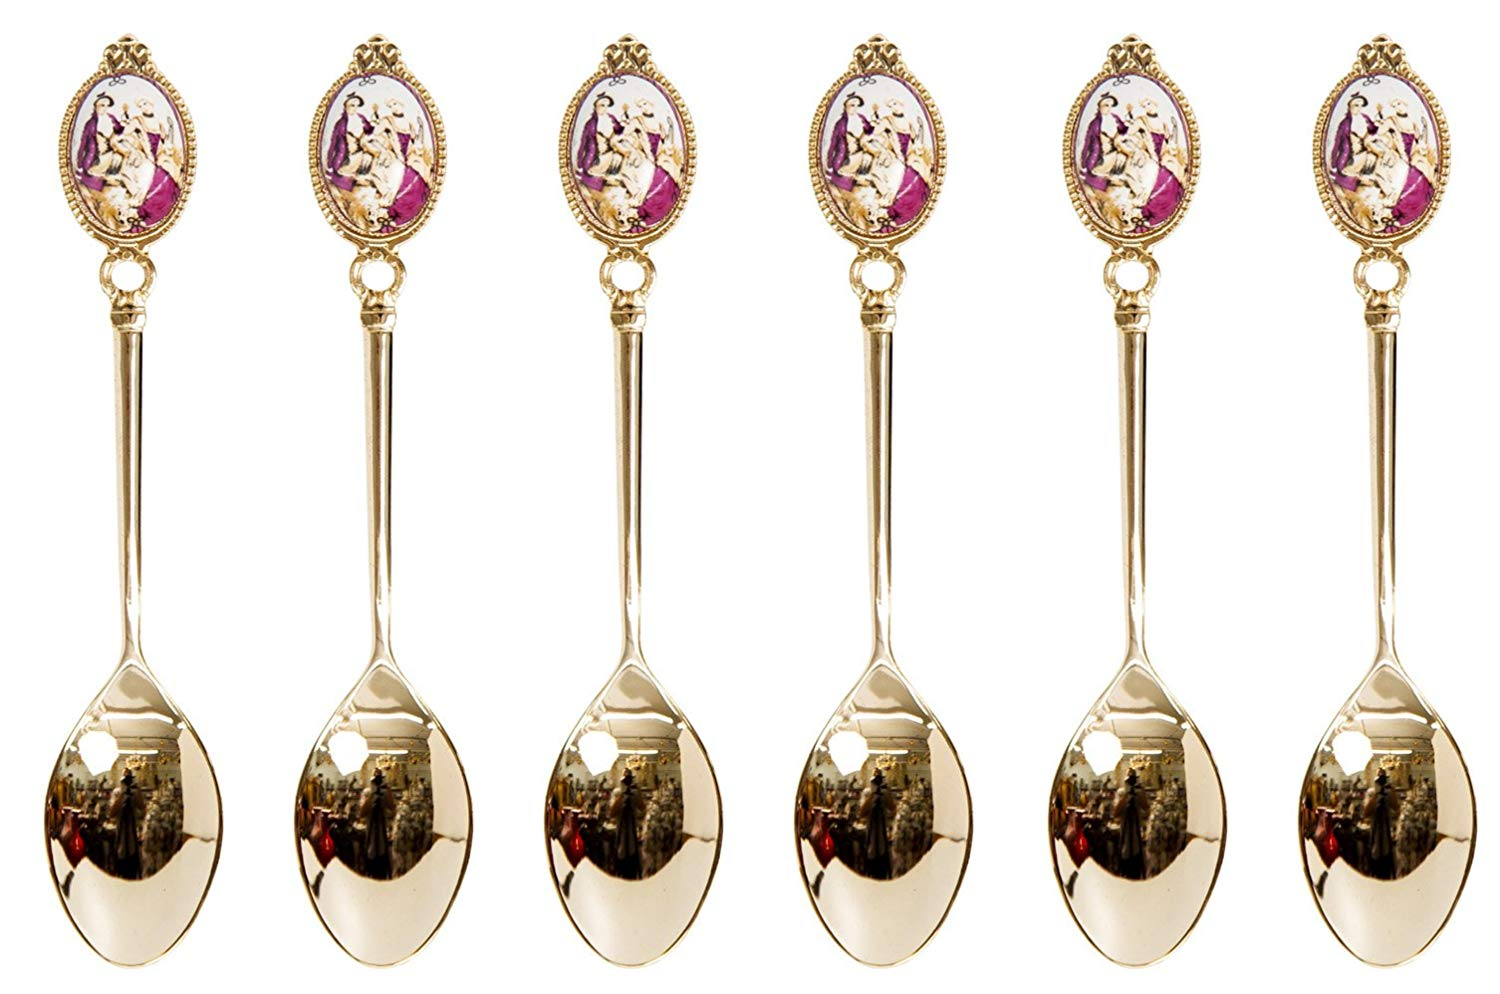 """6/""""L 24K Gold Plated 6-Pc Flatware Set Demi Dessert Spoons with Clear Crystal"""